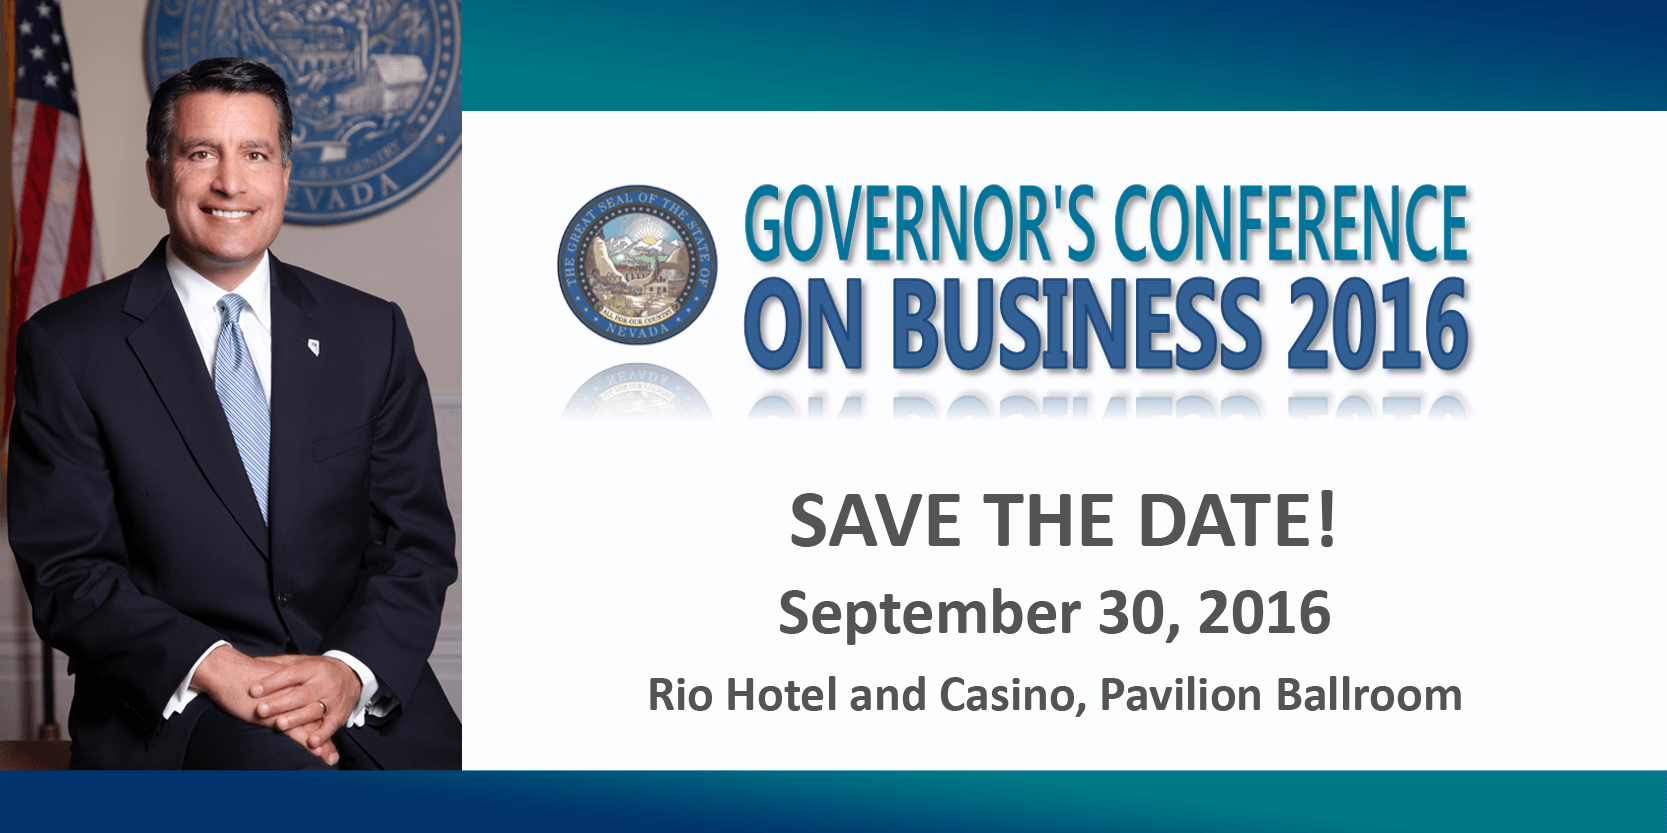 Governor's Conference on Business